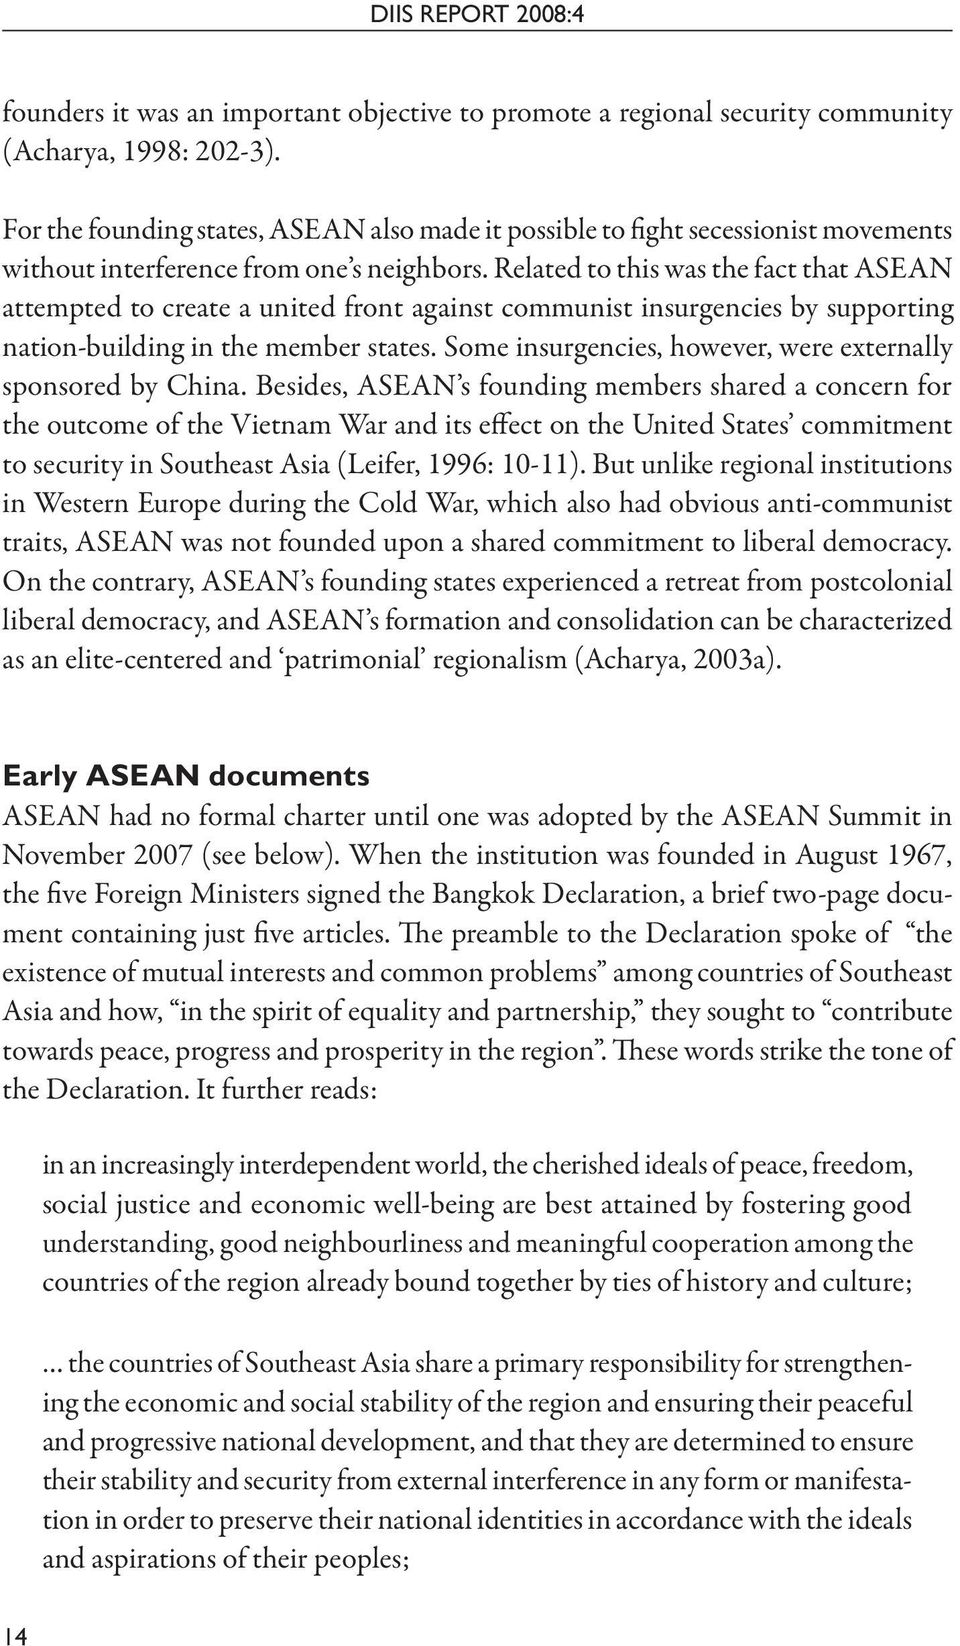 Related to this was the fact that ASEAN attempted to create a united front against communist insurgencies by supporting nation-building in the member states.